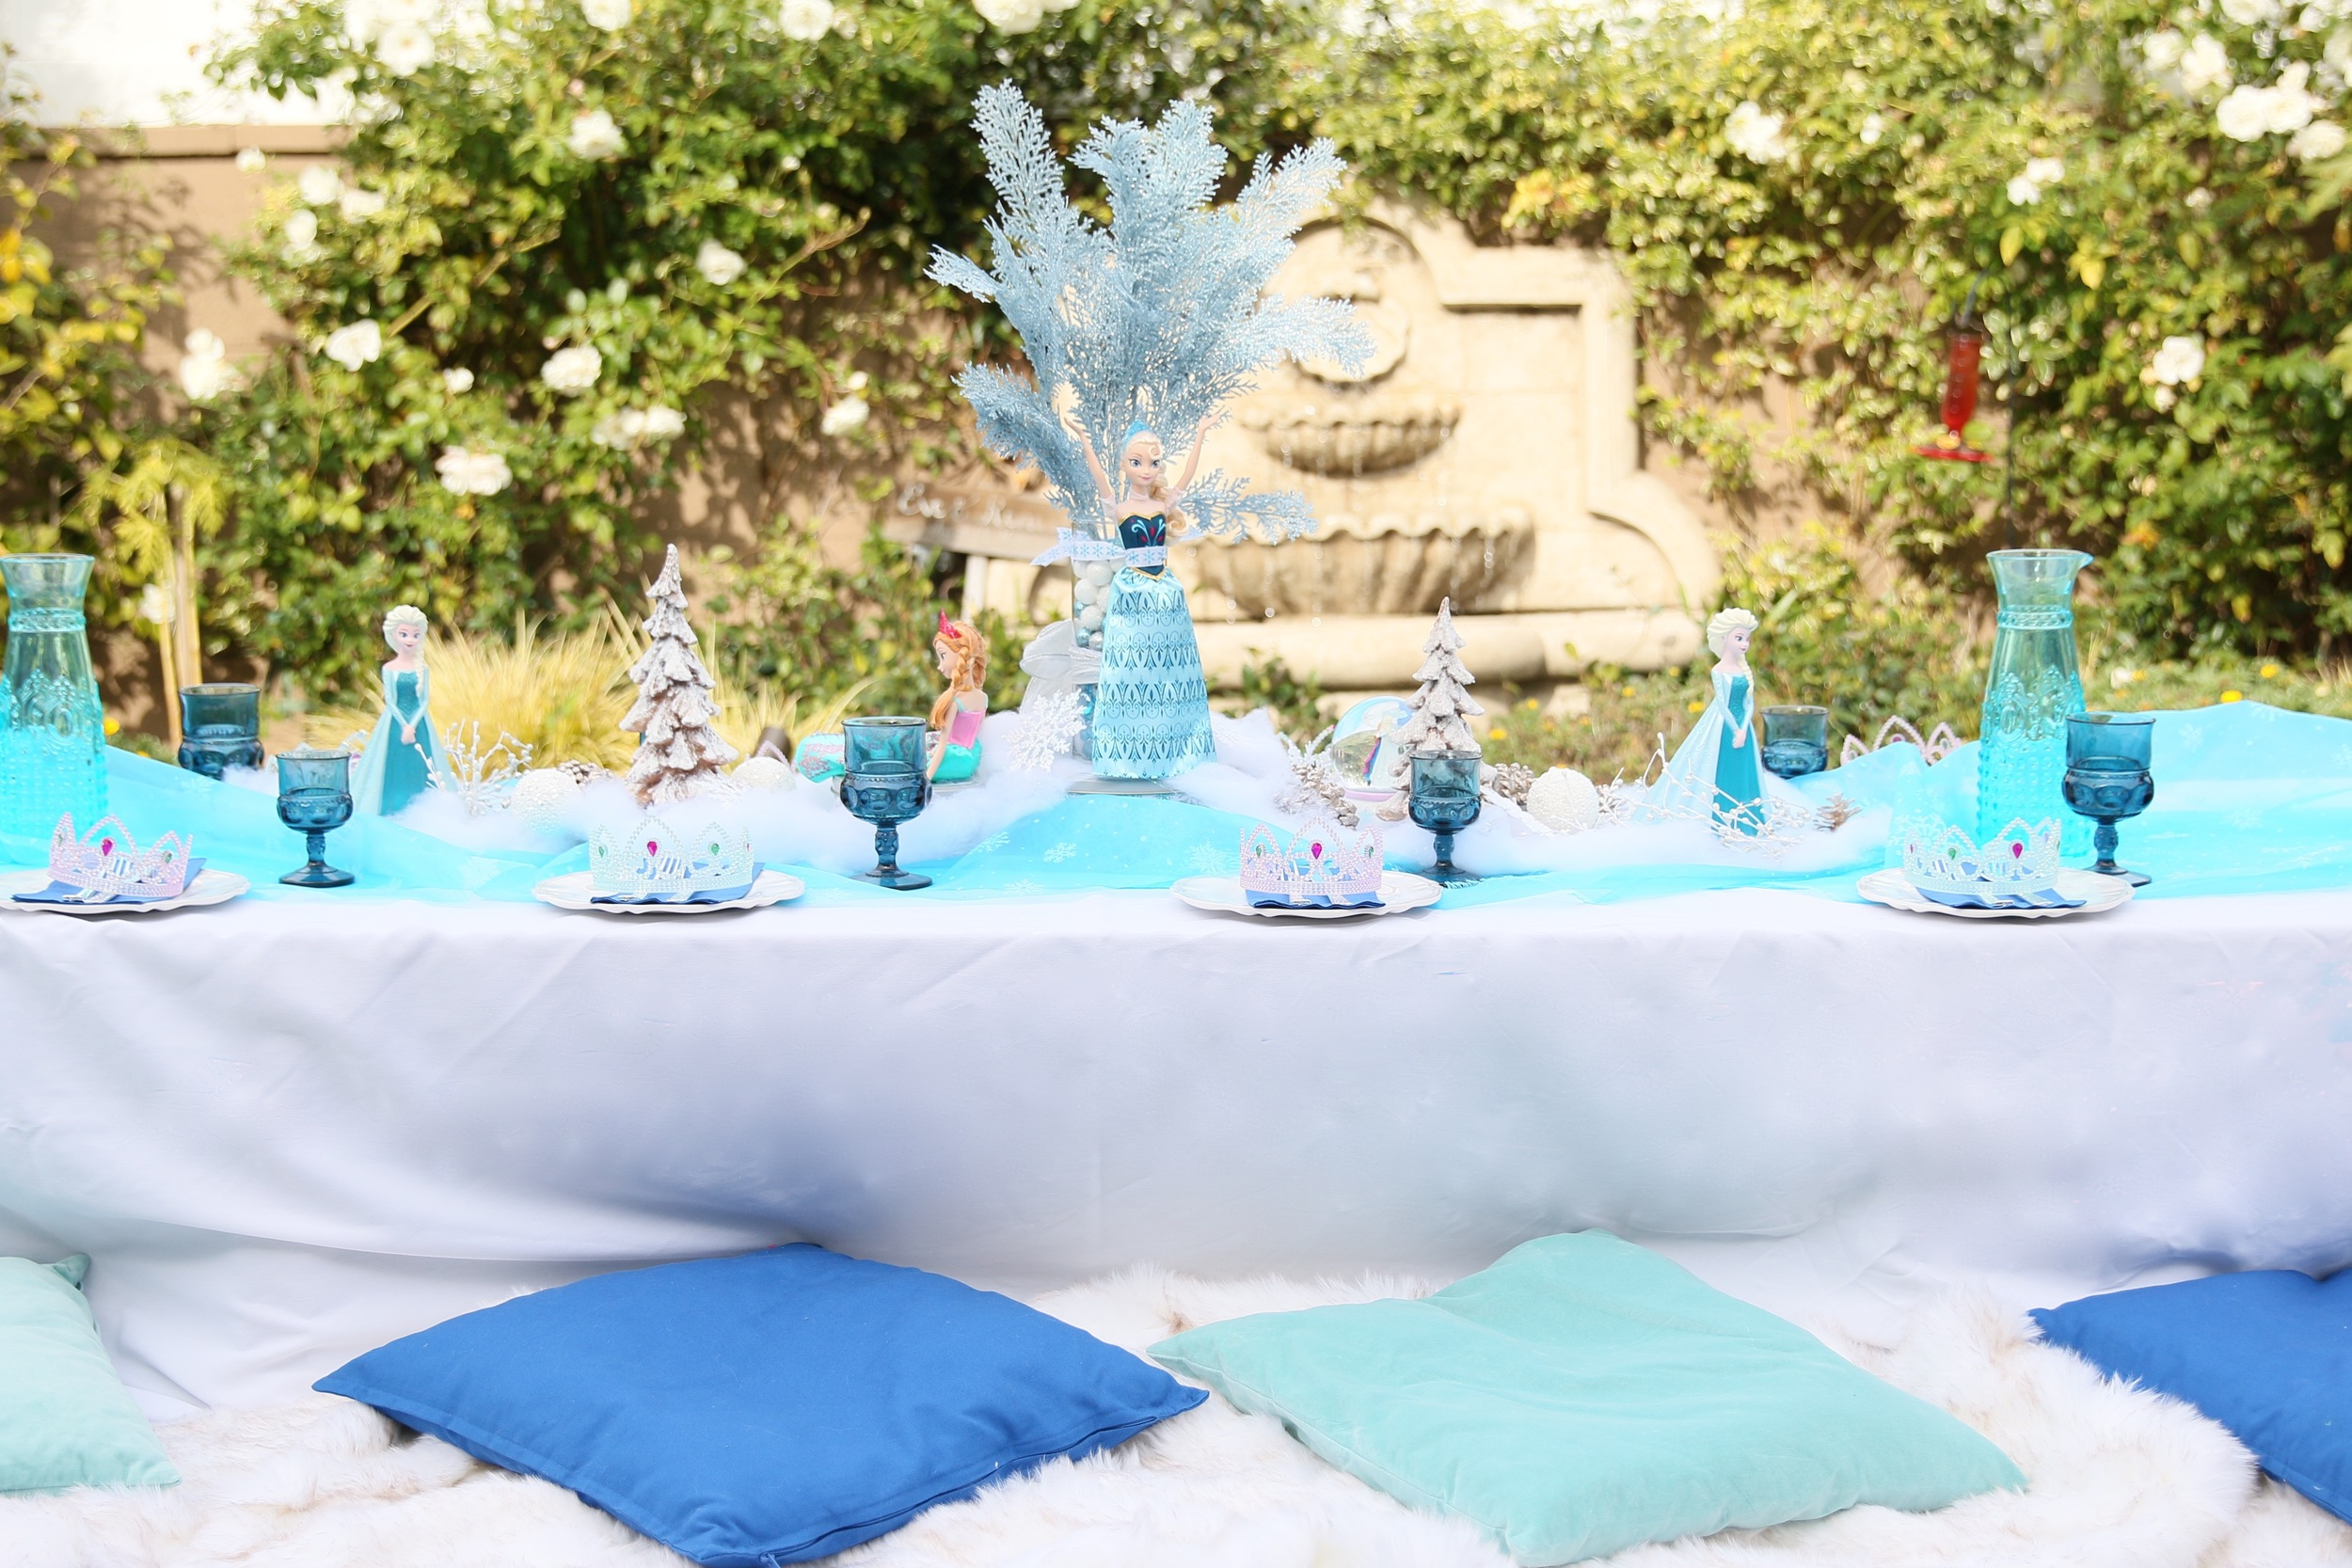 All this available to rent for your FROZEN party! @inJOYtheParty